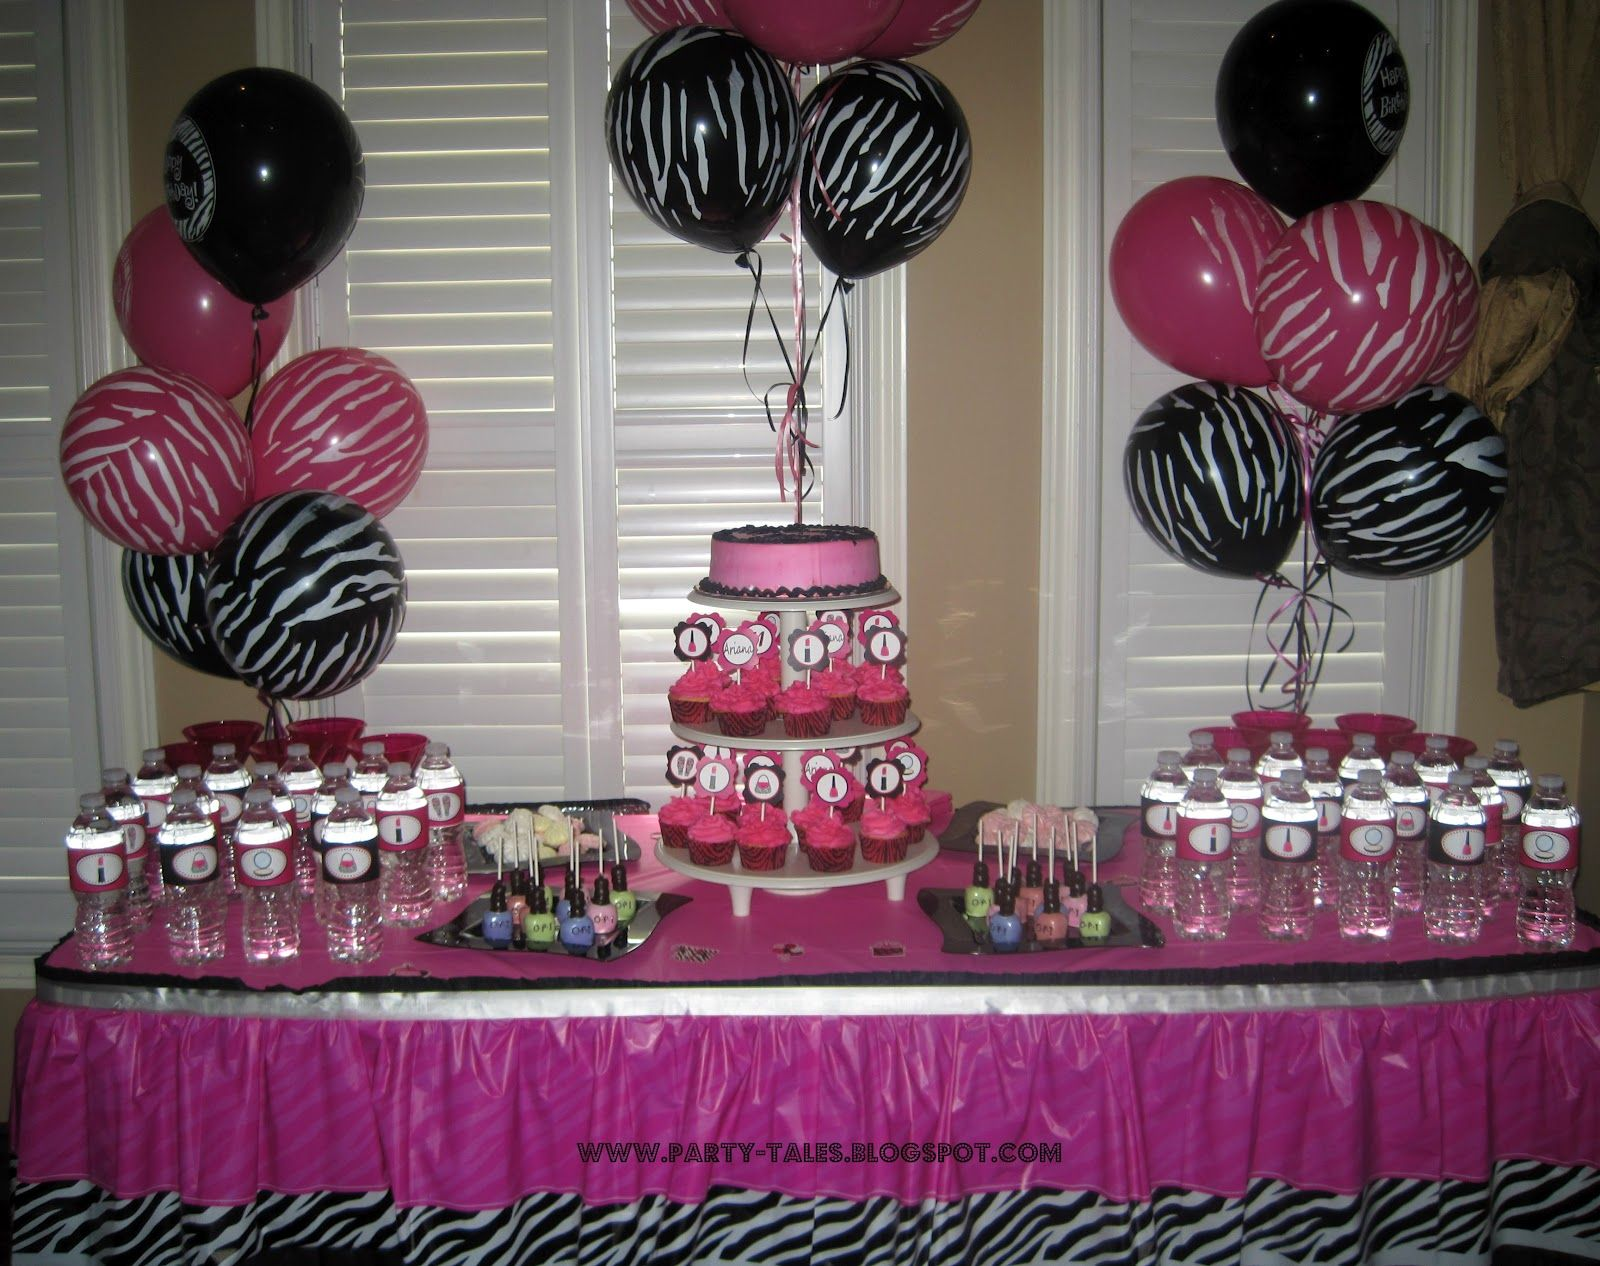 Birthday table decorations for girls - Party Tales Birthday Party Zebra Print And Hot Pink Diva Spa Party Party Ideas For Girlsbirthday